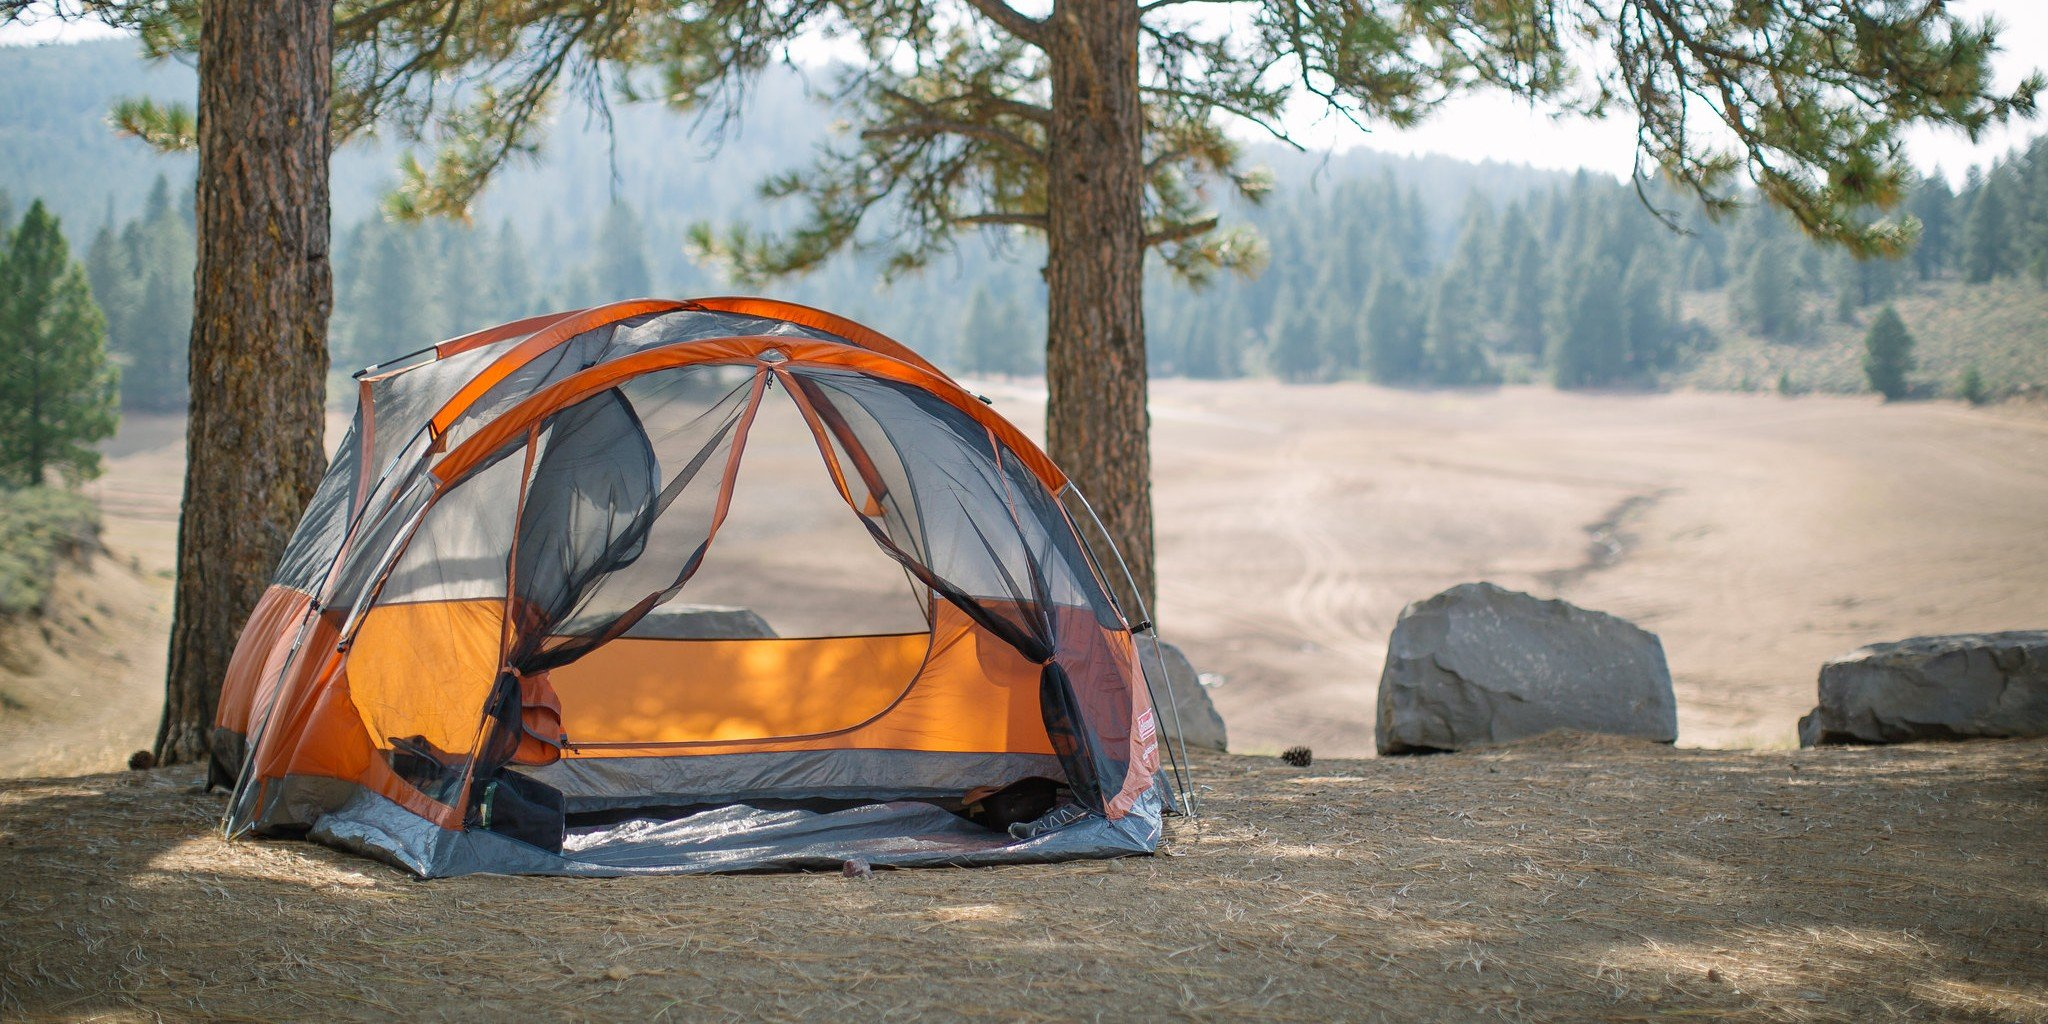 Best tent with AC port: what tents have AC ports in 2020?